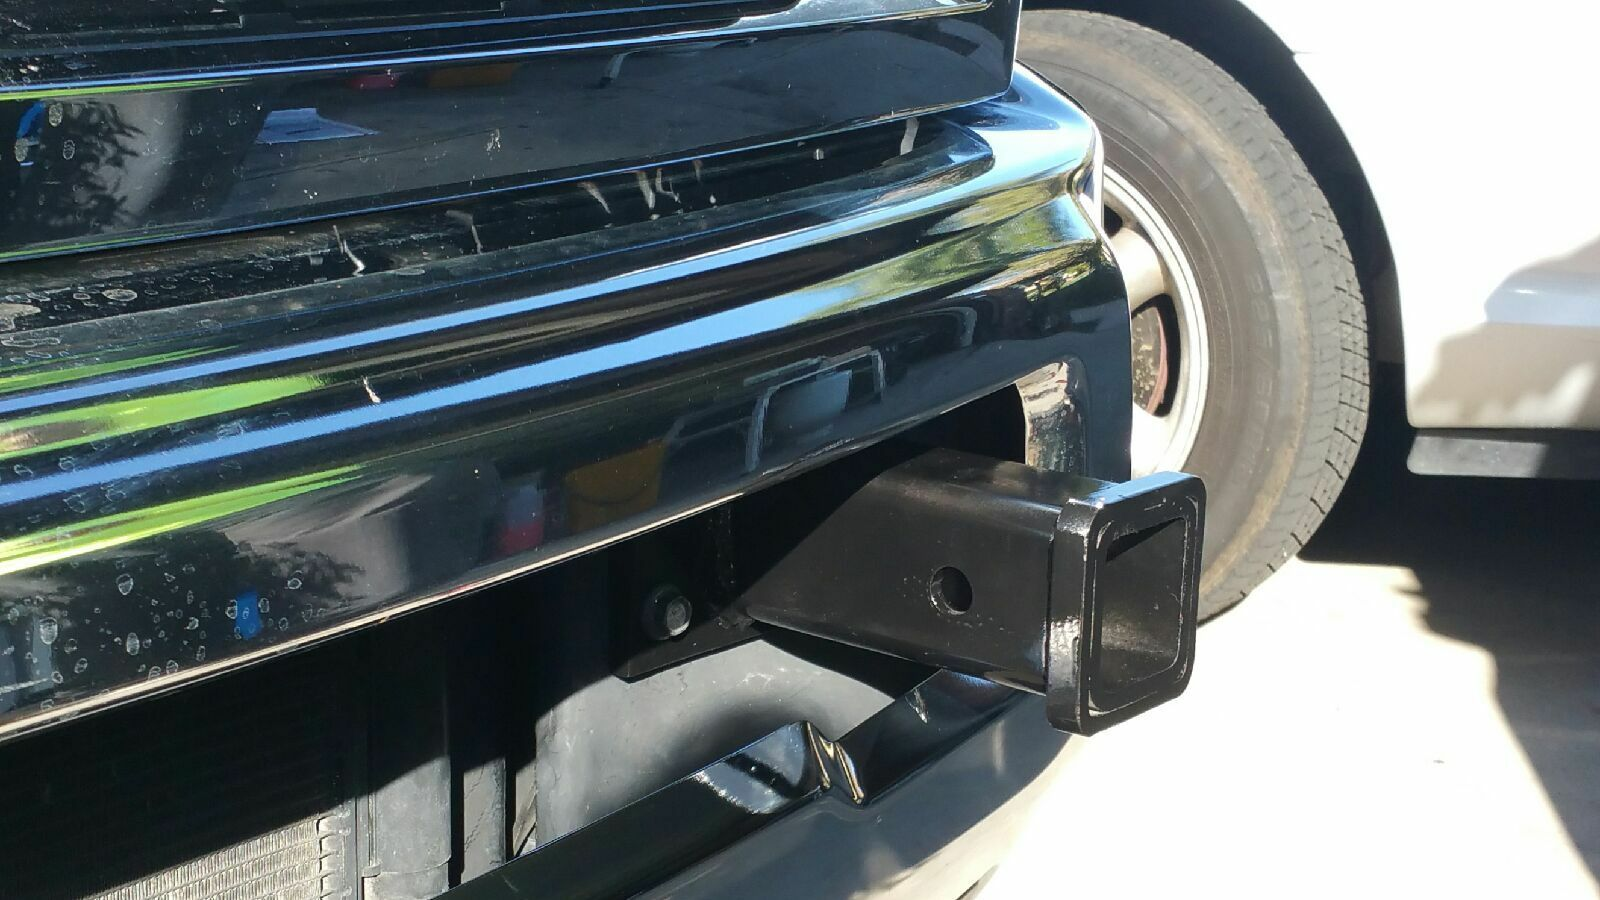 Dodge Ram Front Tow Hook 2 Receiver Hitch Truck Bumper Tube 2014 1500 Hooks 1 Of 10